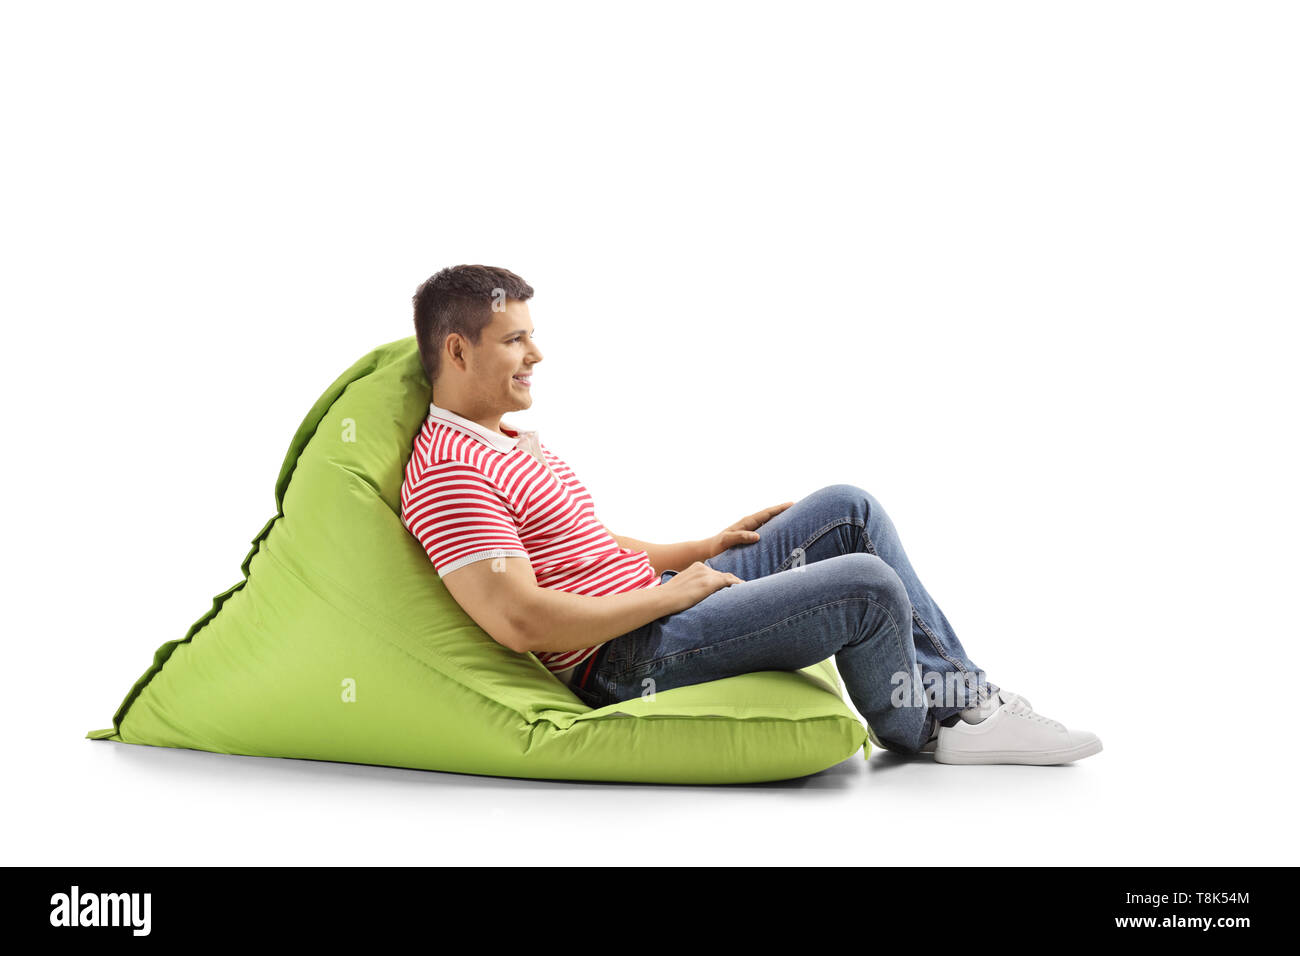 Full length profile shot of a young man sitting on a green bean bag and smiling isolated on white background - Stock Image